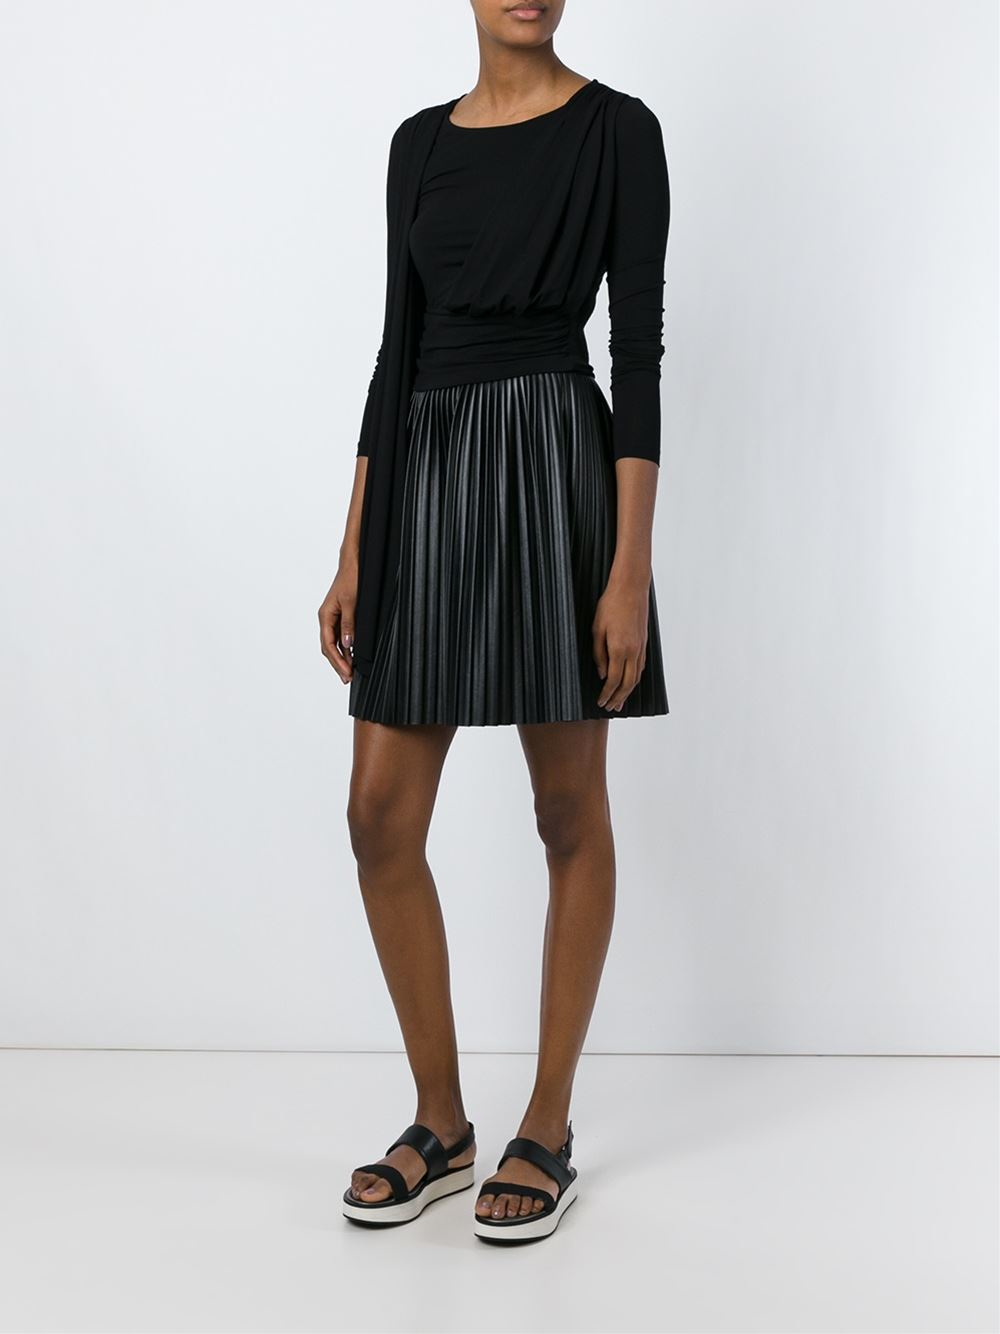 Mm6 by maison martin margiela draped top in black lyst for Mm6 maison margiela